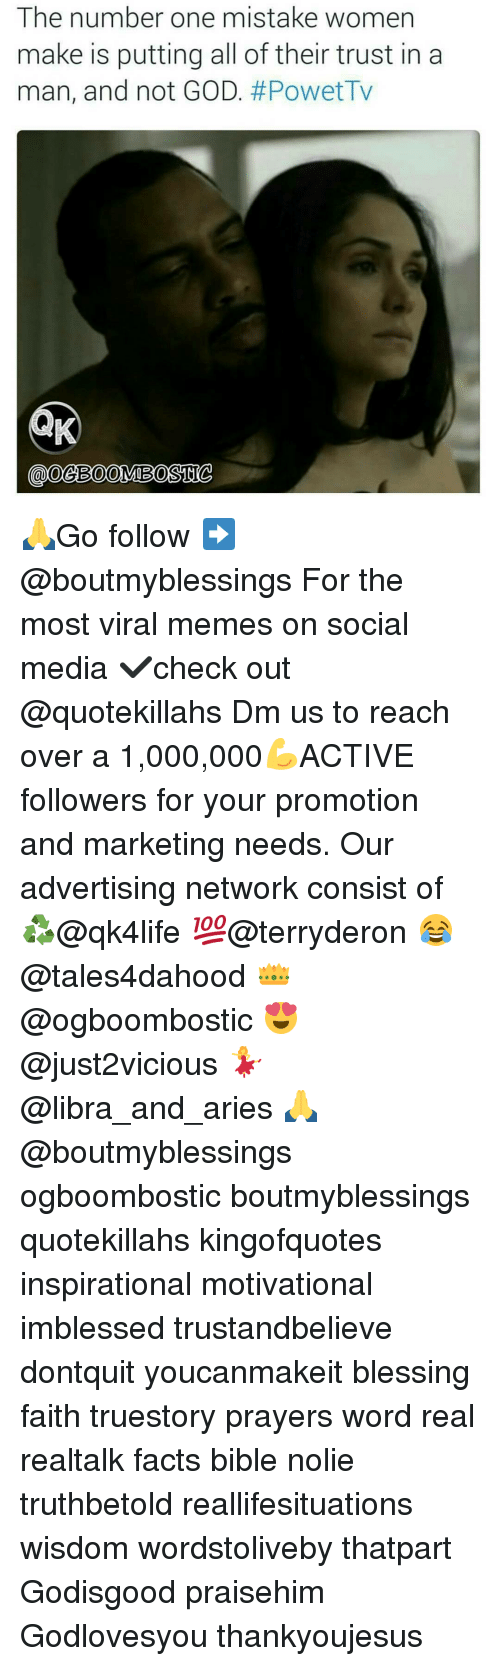 Advertise Network: The number one mistake women  make is putting all of their trust in a  man, and not GOD  🙏Go follow ➡@boutmyblessings For the most viral memes on social media ✔check out @quotekillahs Dm us to reach over a 1,000,000💪ACTIVE followers for your promotion and marketing needs. Our advertising network consist of ♻@qk4life 💯@terryderon 😂@tales4dahood 👑@ogboombostic 😍@just2vicious 💃@libra_and_aries 🙏@boutmyblessings ogboombostic boutmyblessings quotekillahs kingofquotes inspirational motivational imblessed trustandbelieve dontquit youcanmakeit blessing faith truestory prayers word real realtalk facts bible nolie truthbetold reallifesituations wisdom wordstoliveby thatpart Godisgood praisehim Godlovesyou thankyoujesus